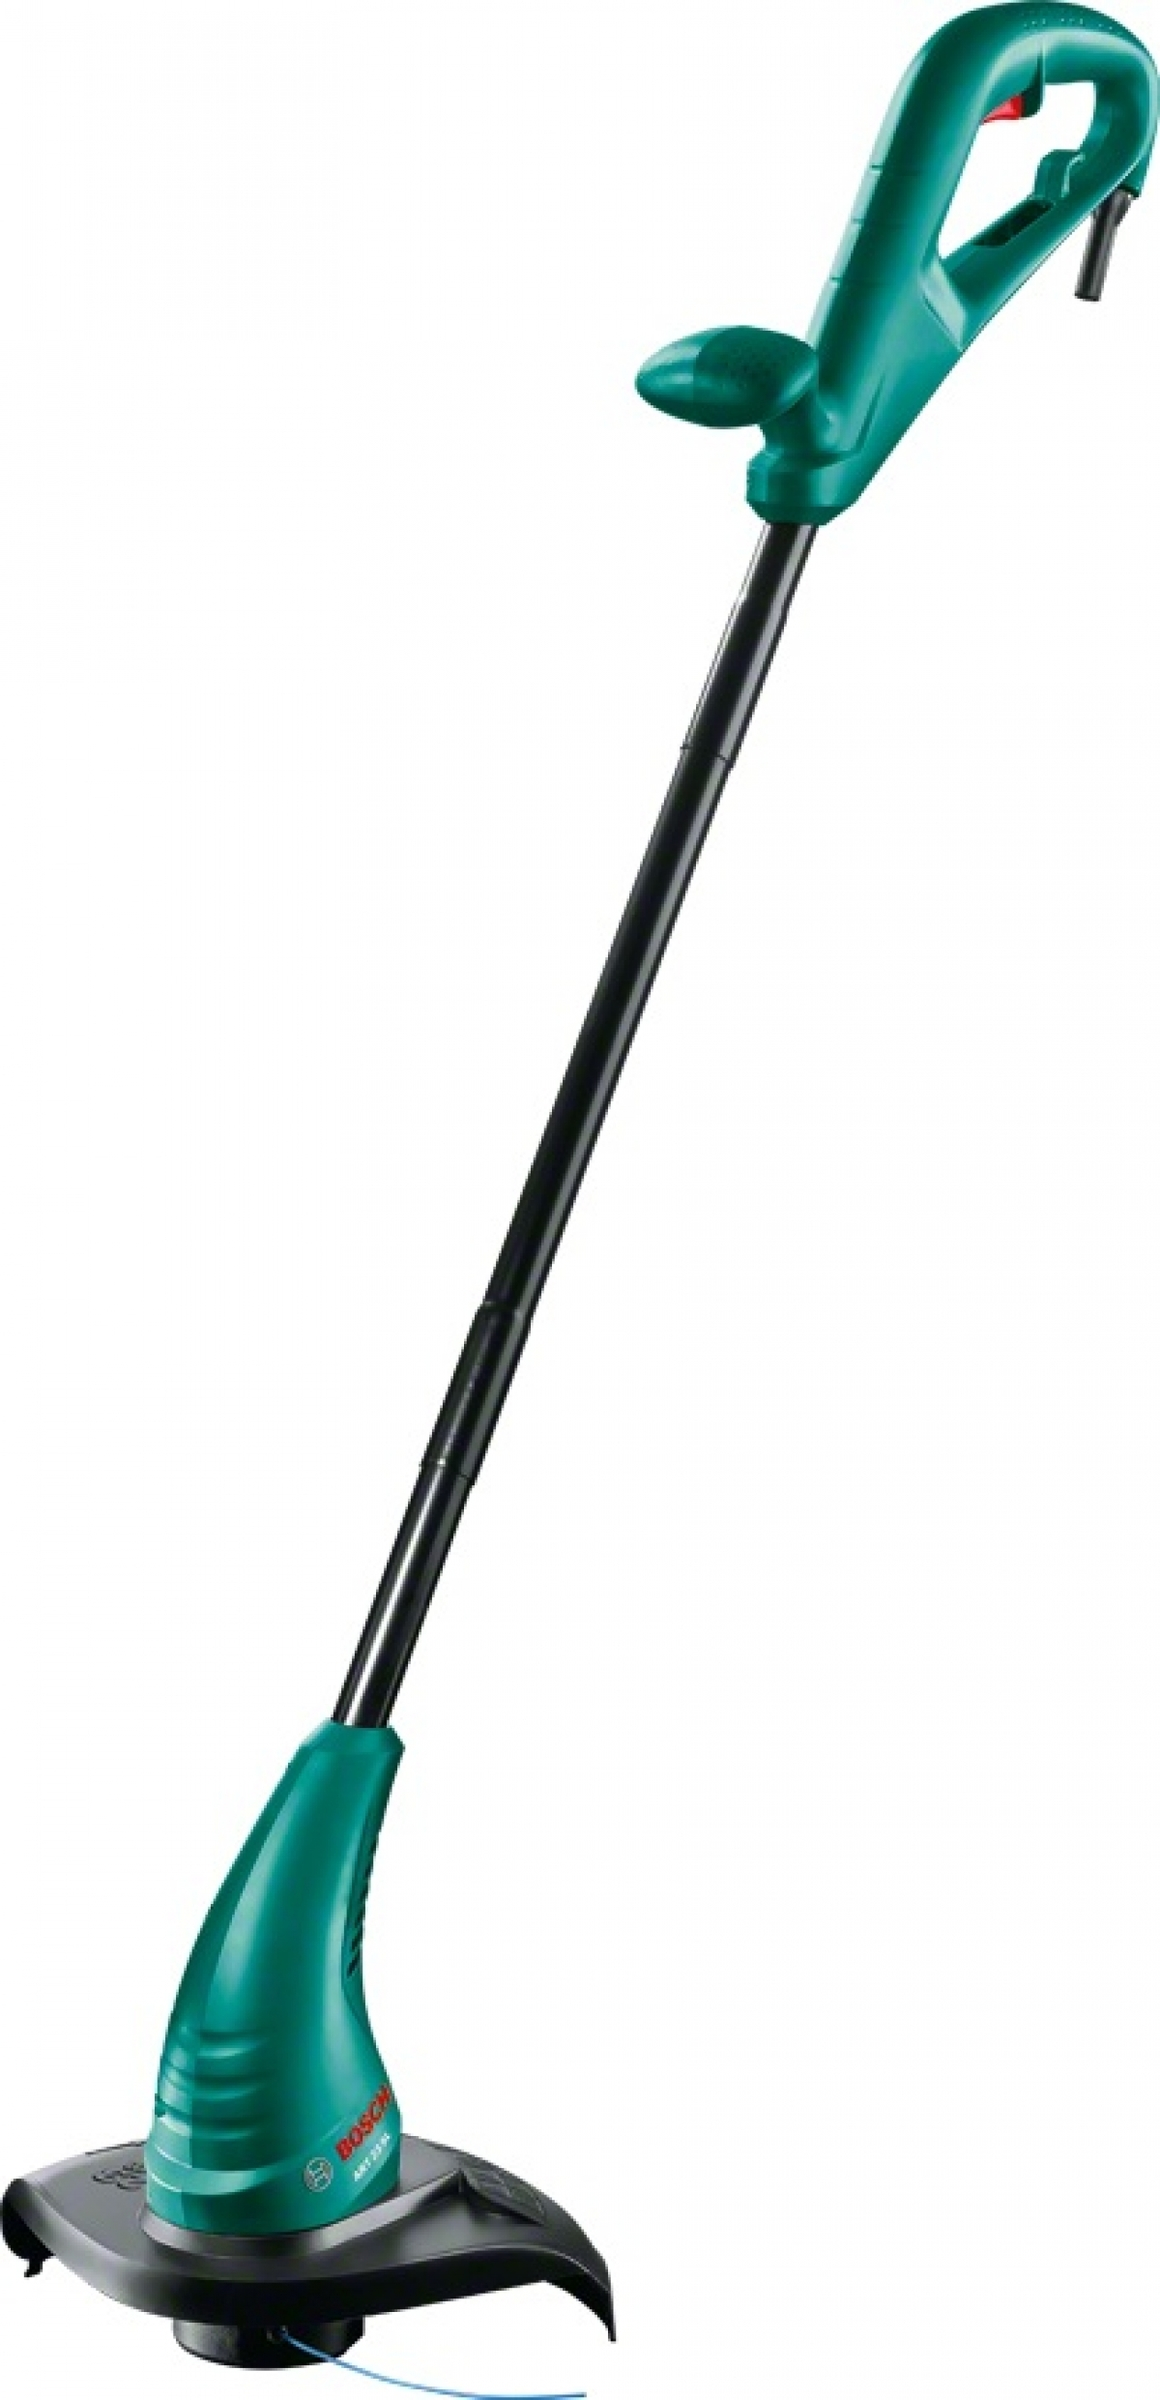 bosch 280w art 23 sl grass trimmer my power tools. Black Bedroom Furniture Sets. Home Design Ideas